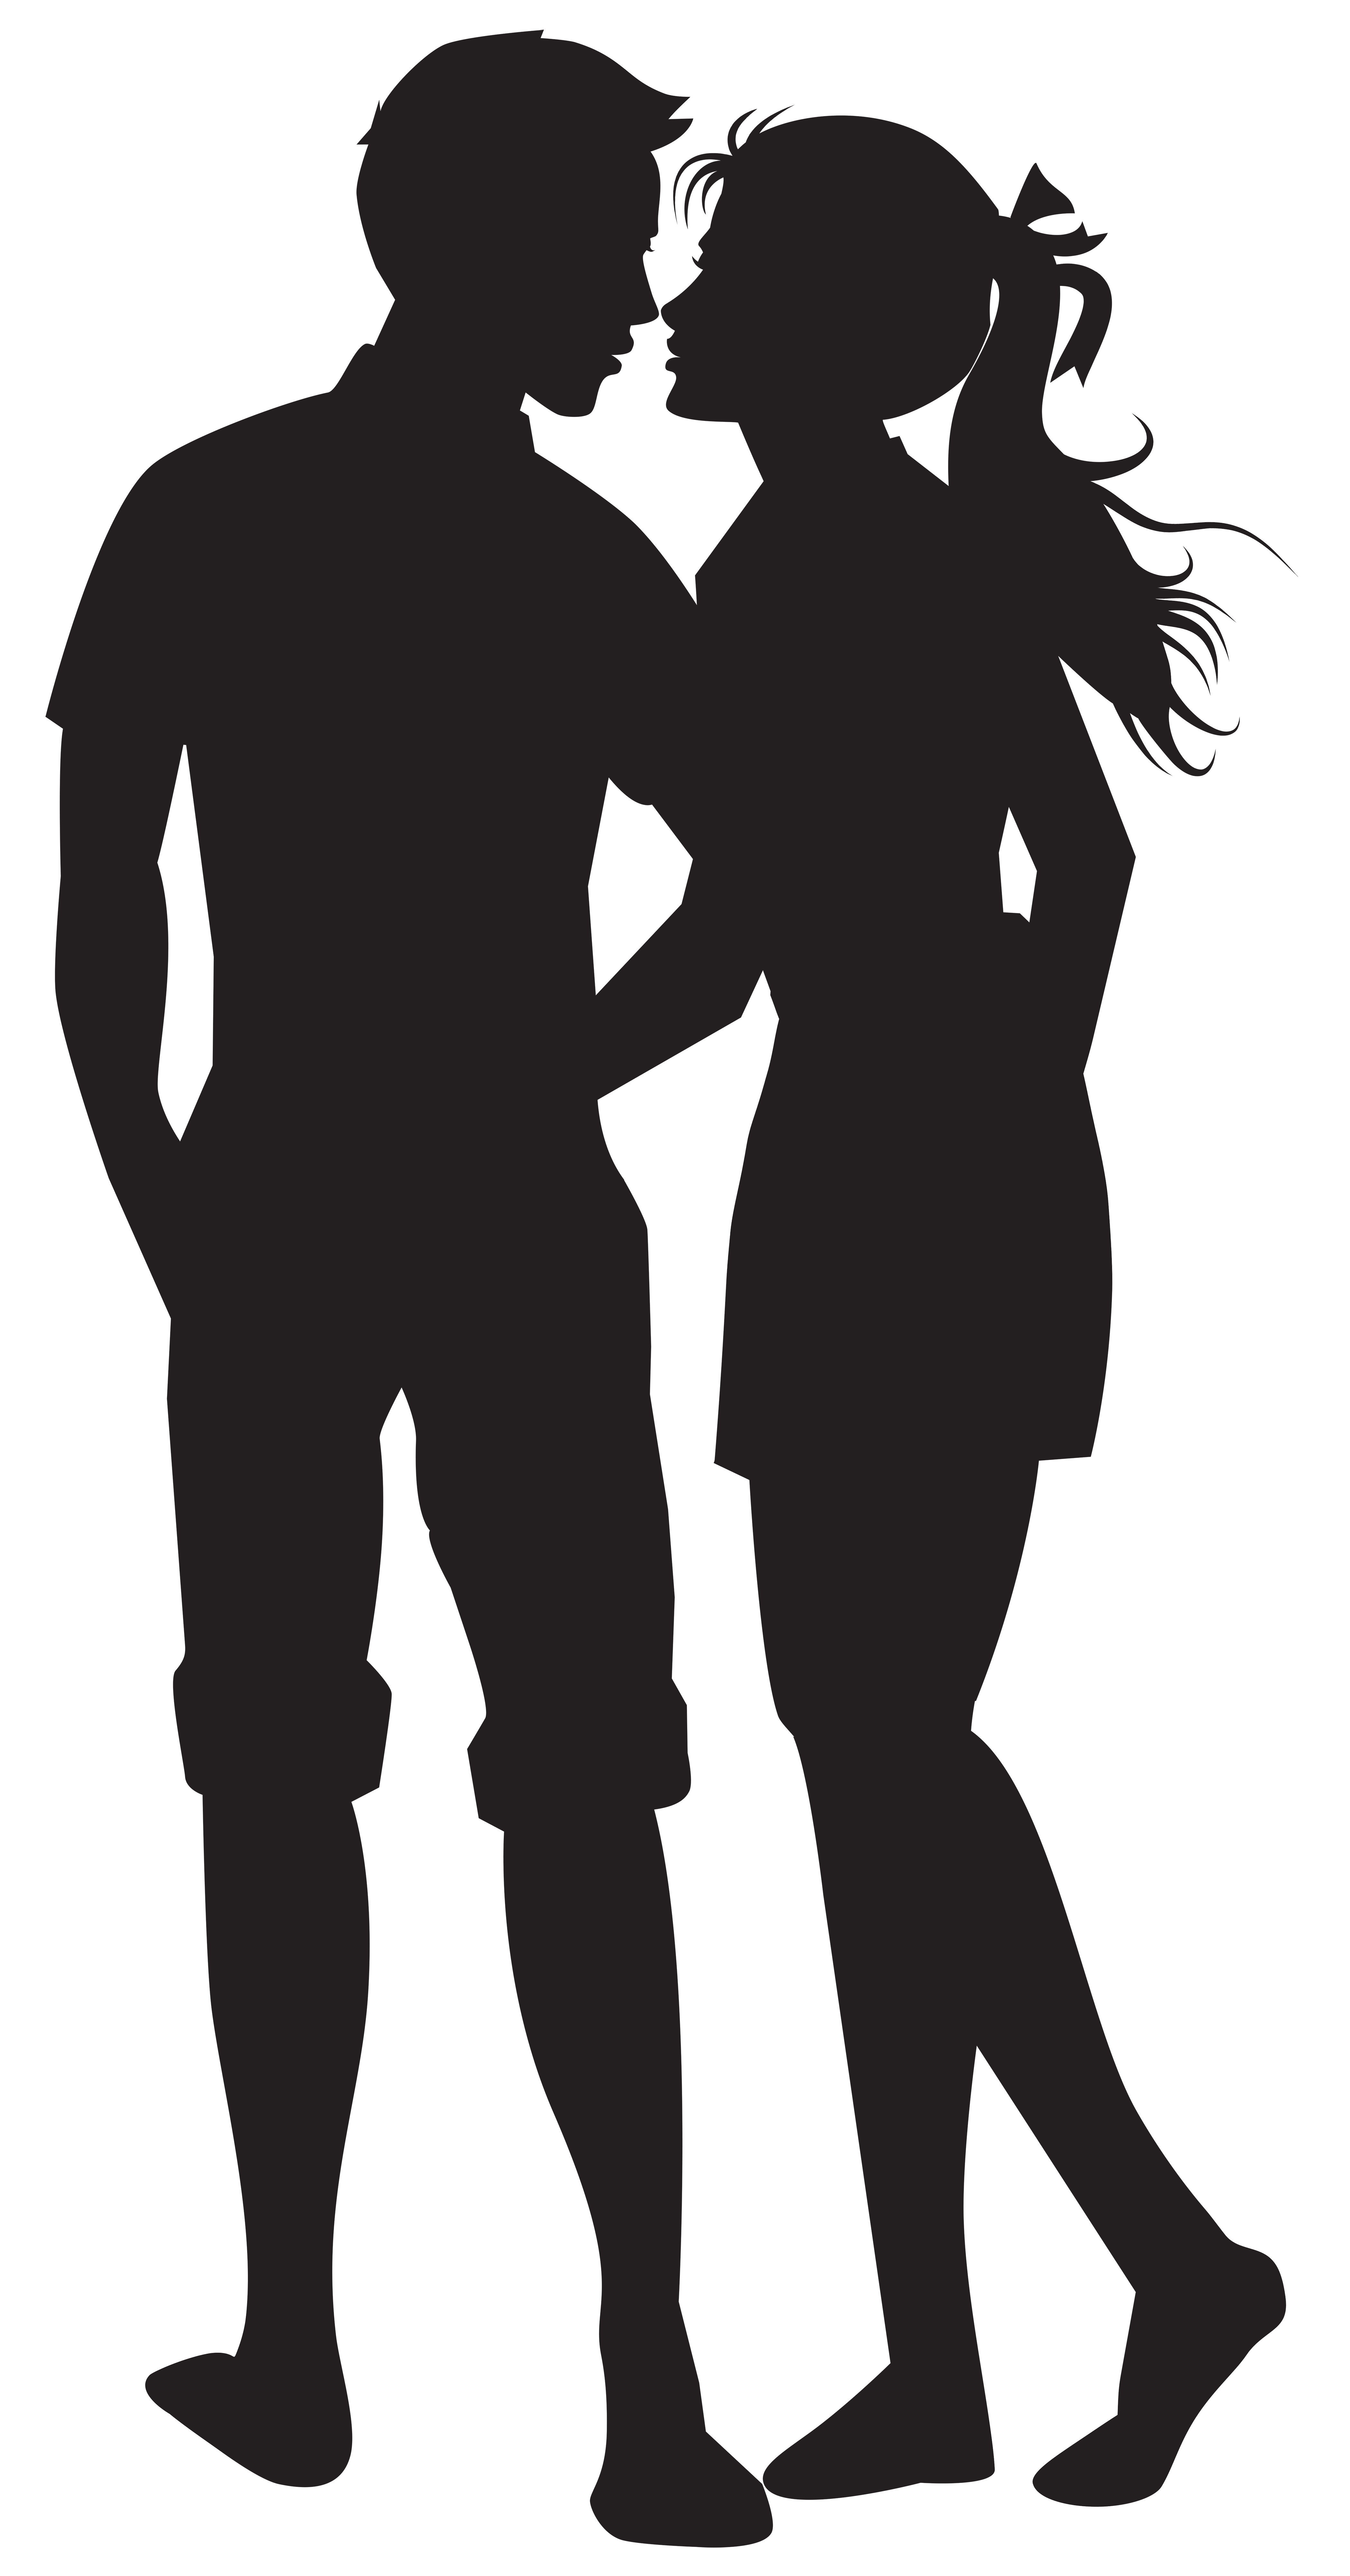 Png couple. Silhouettes clip art image